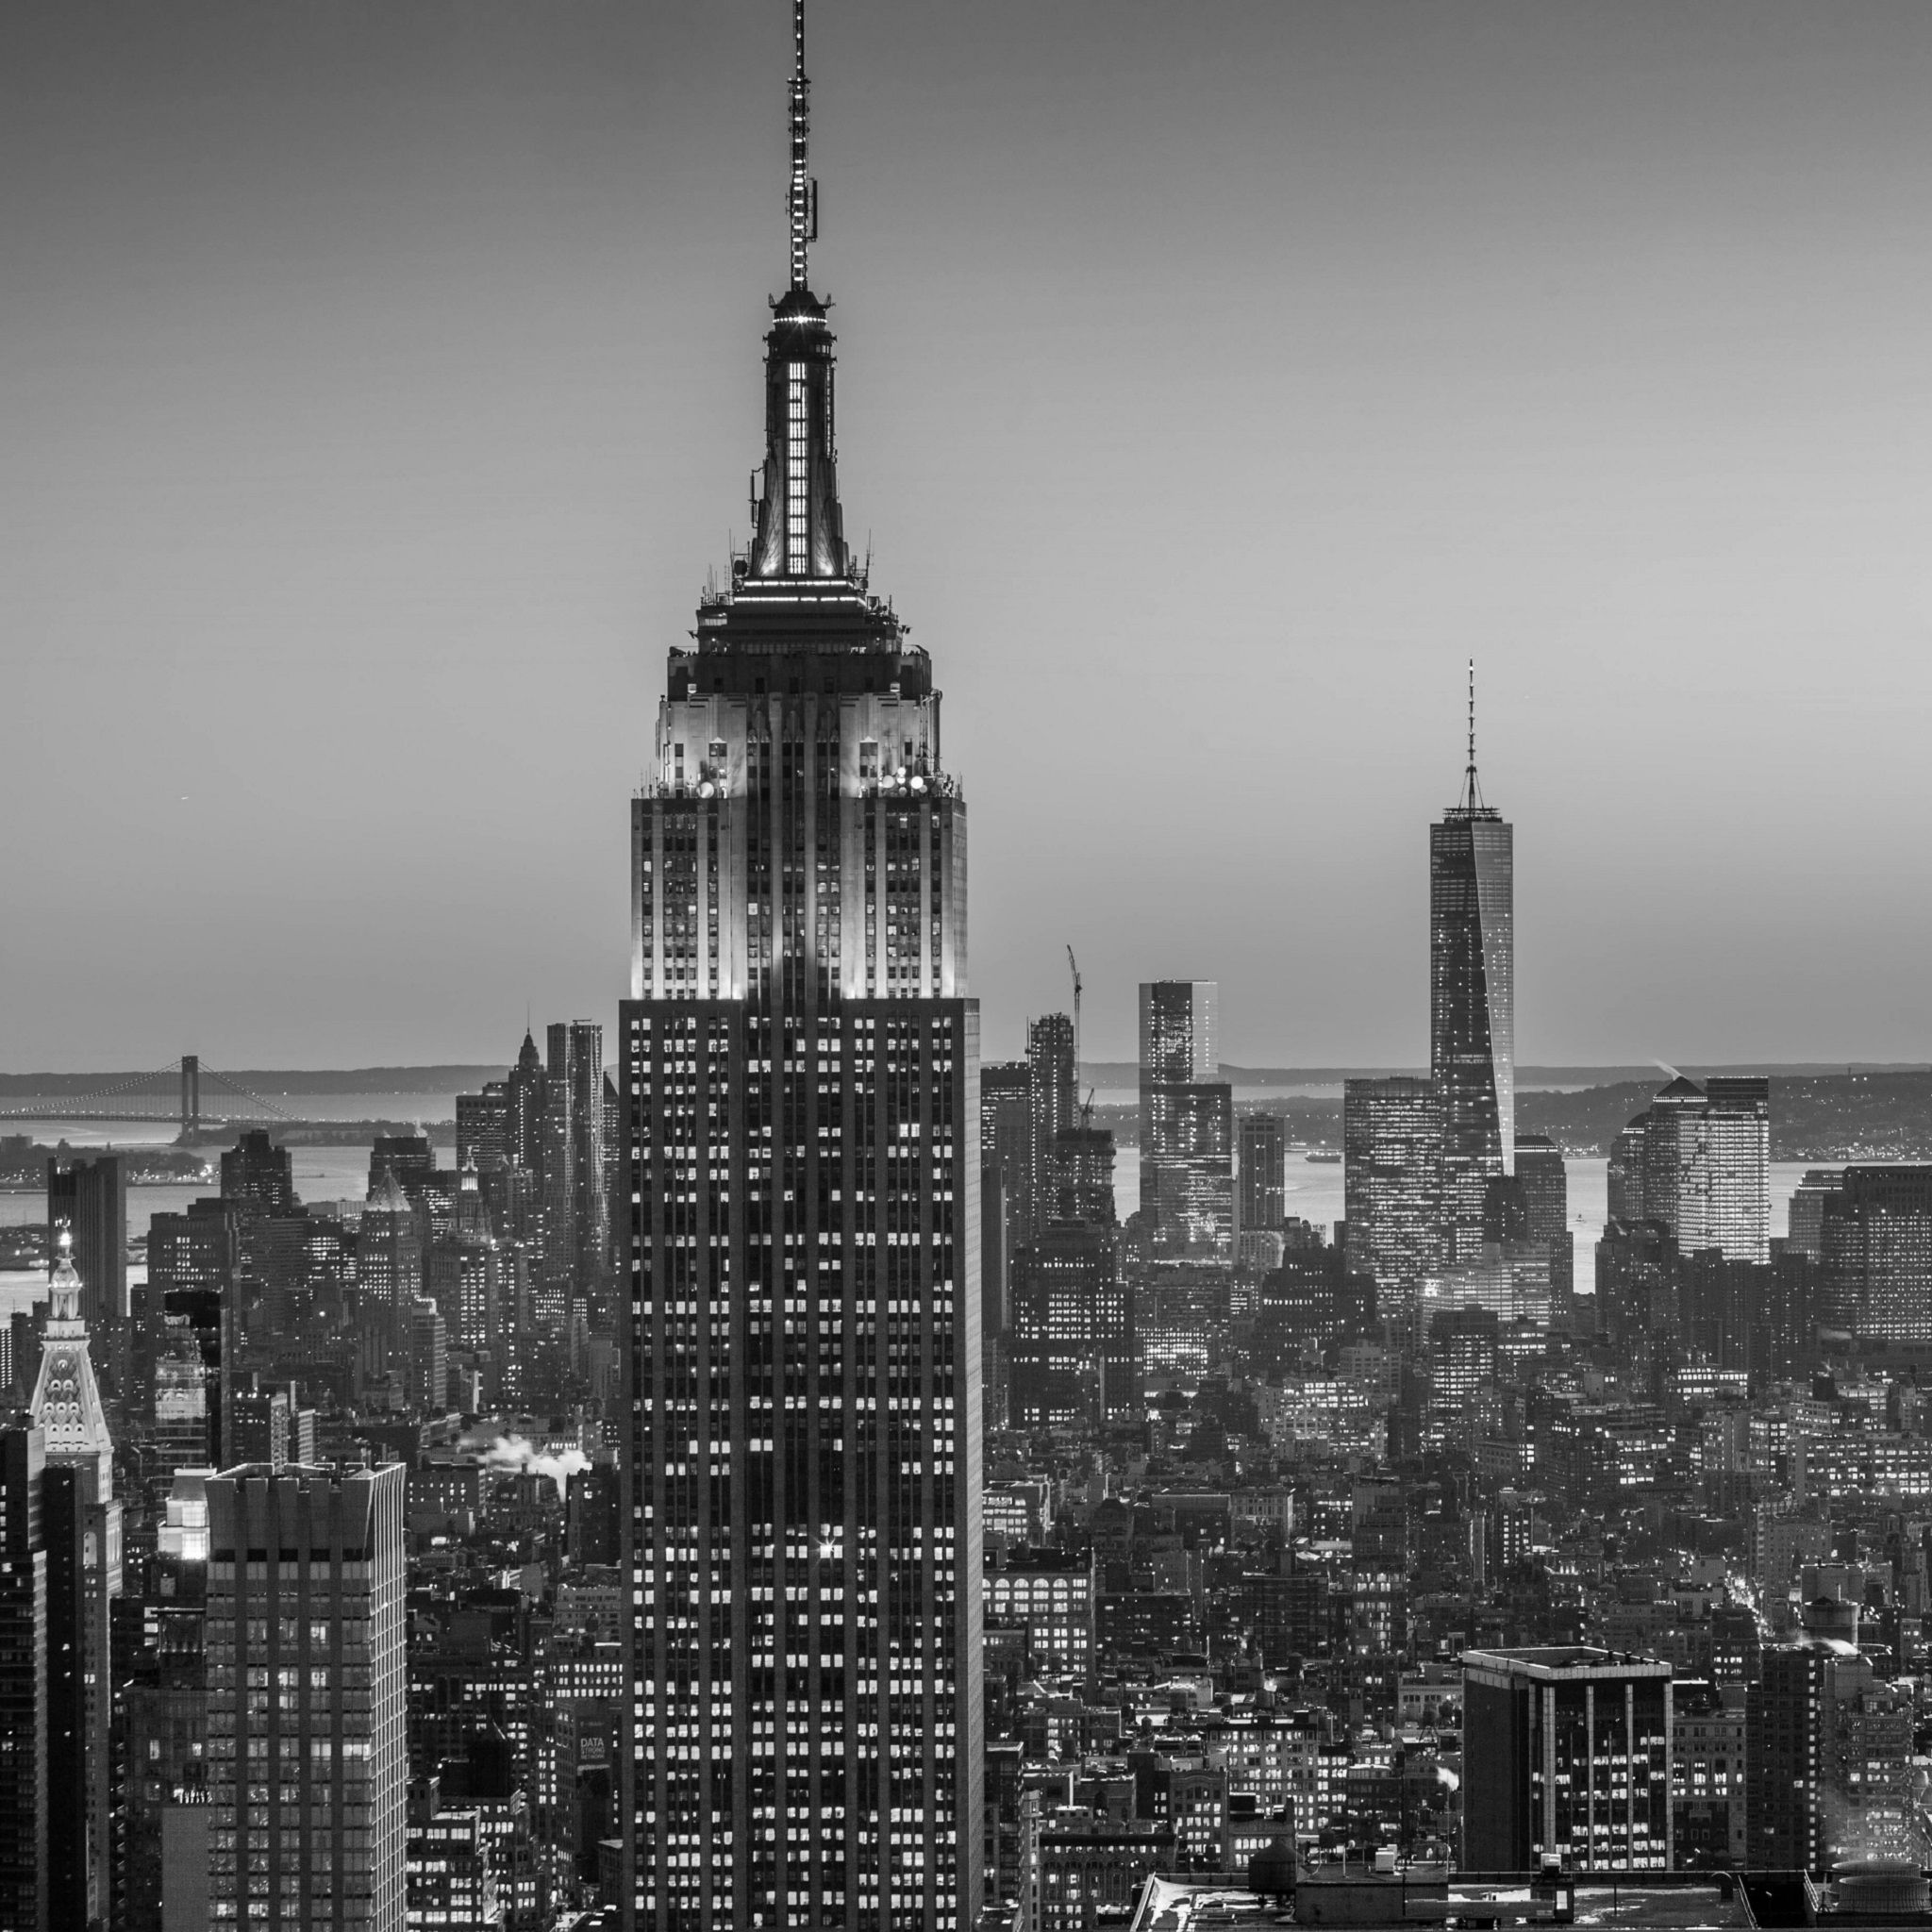 New York City Tap To See More Beautiful Black White Photography Wallpapers Mobile9 Photography Wallpaper Black And White Photography